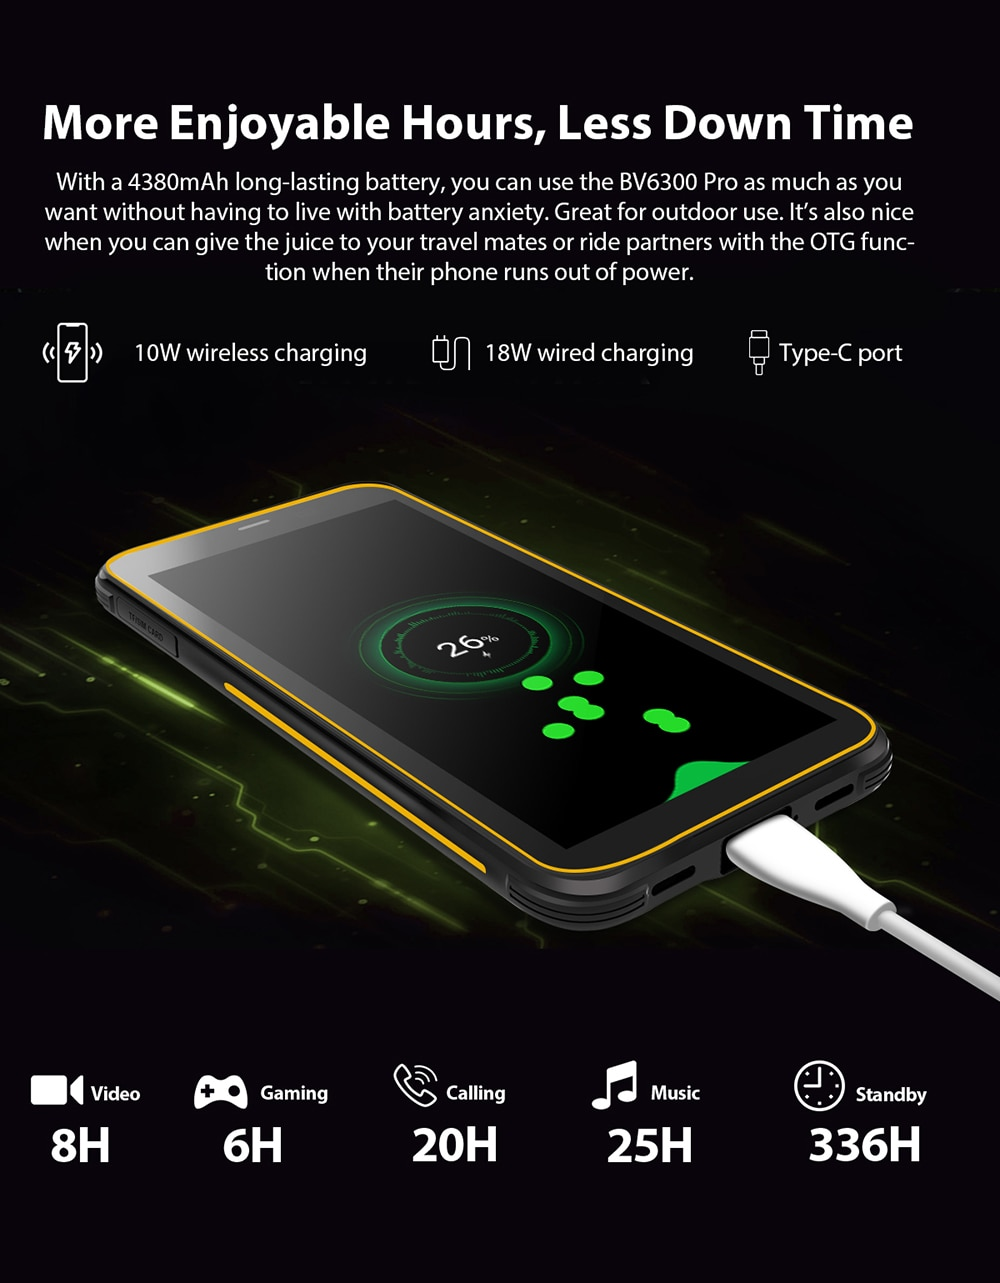 H573ac67eaf5e4ba9babc8e746b3d397cv - BLACKVIEW BV6300 Pro Helio P70 6GB 128GB Smartphone 4380mAh Android 10 Mobile Phone Quad Camere NFC IP68 Waterproof Rugged Phone